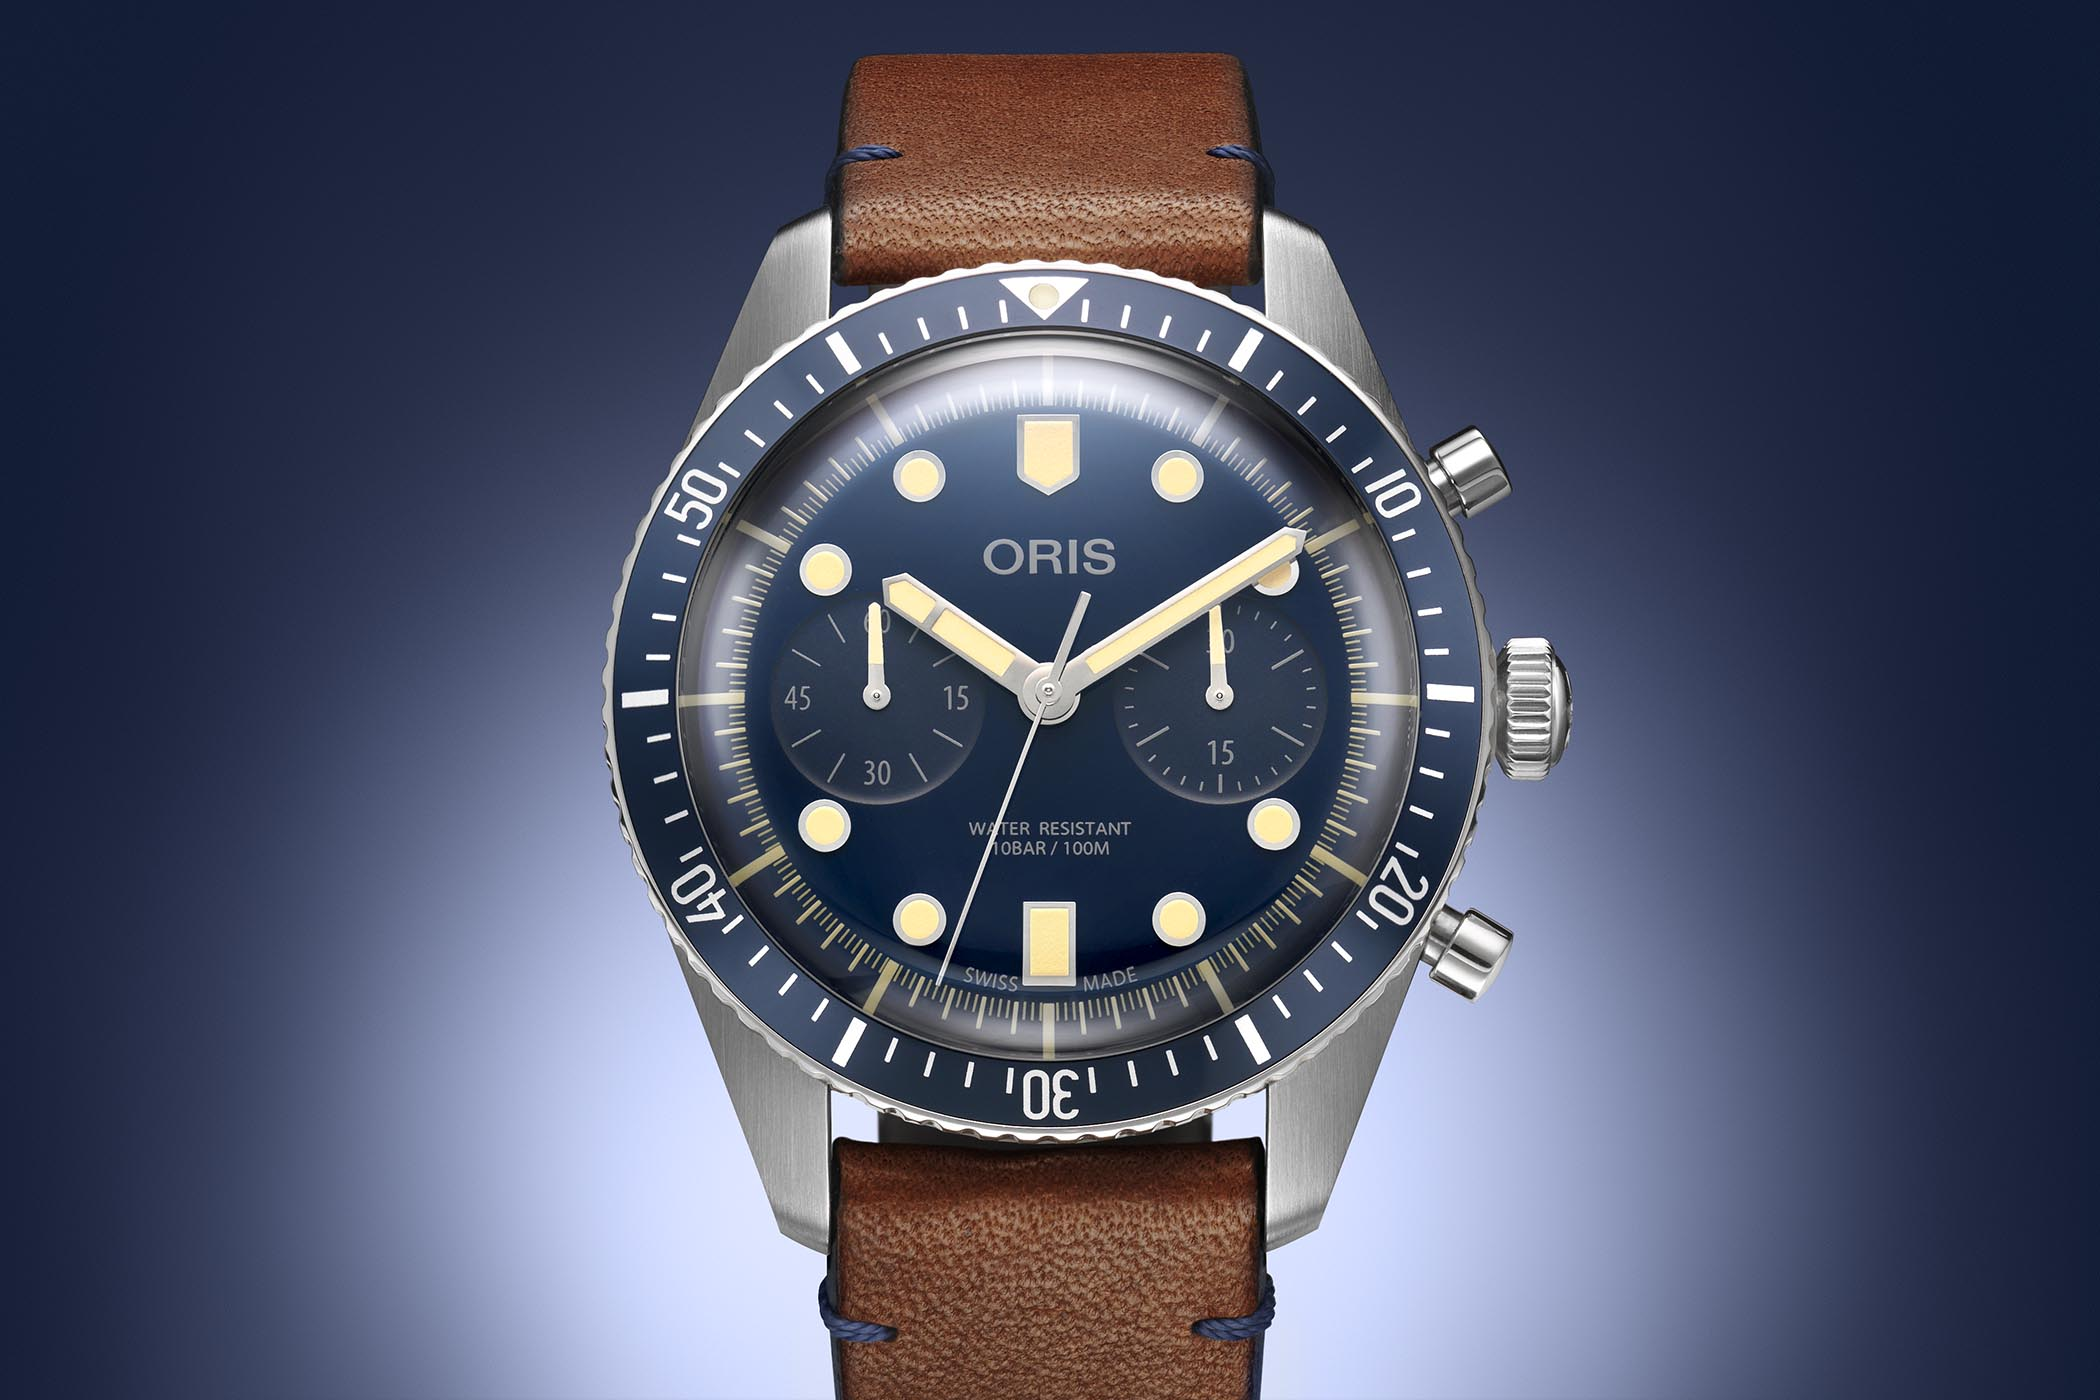 Oris Divers Sixty-Five Chronograph Bucherer Blue Editions - 6